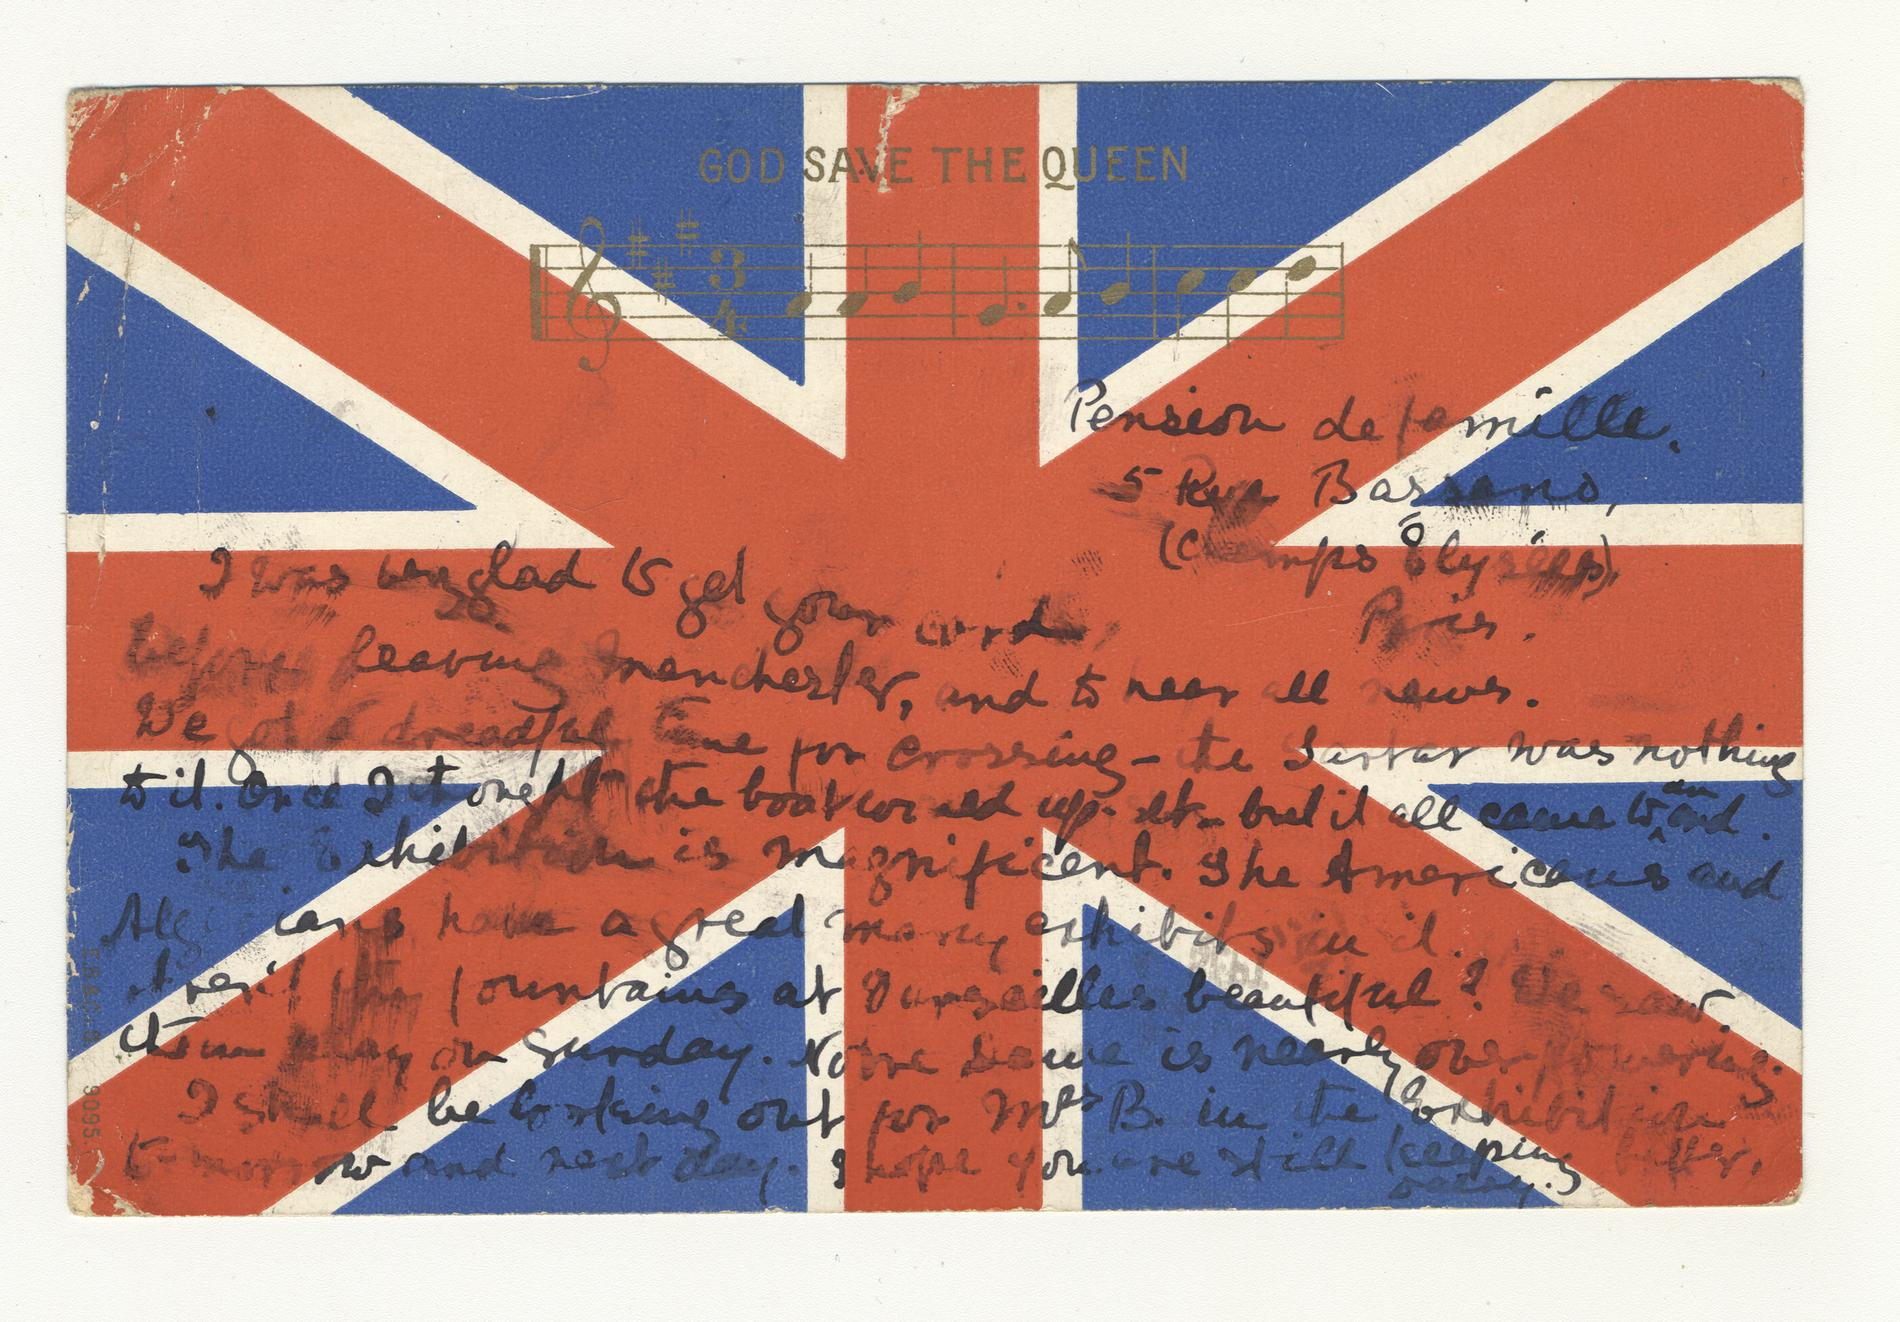 God Save the Queen (Postcard)